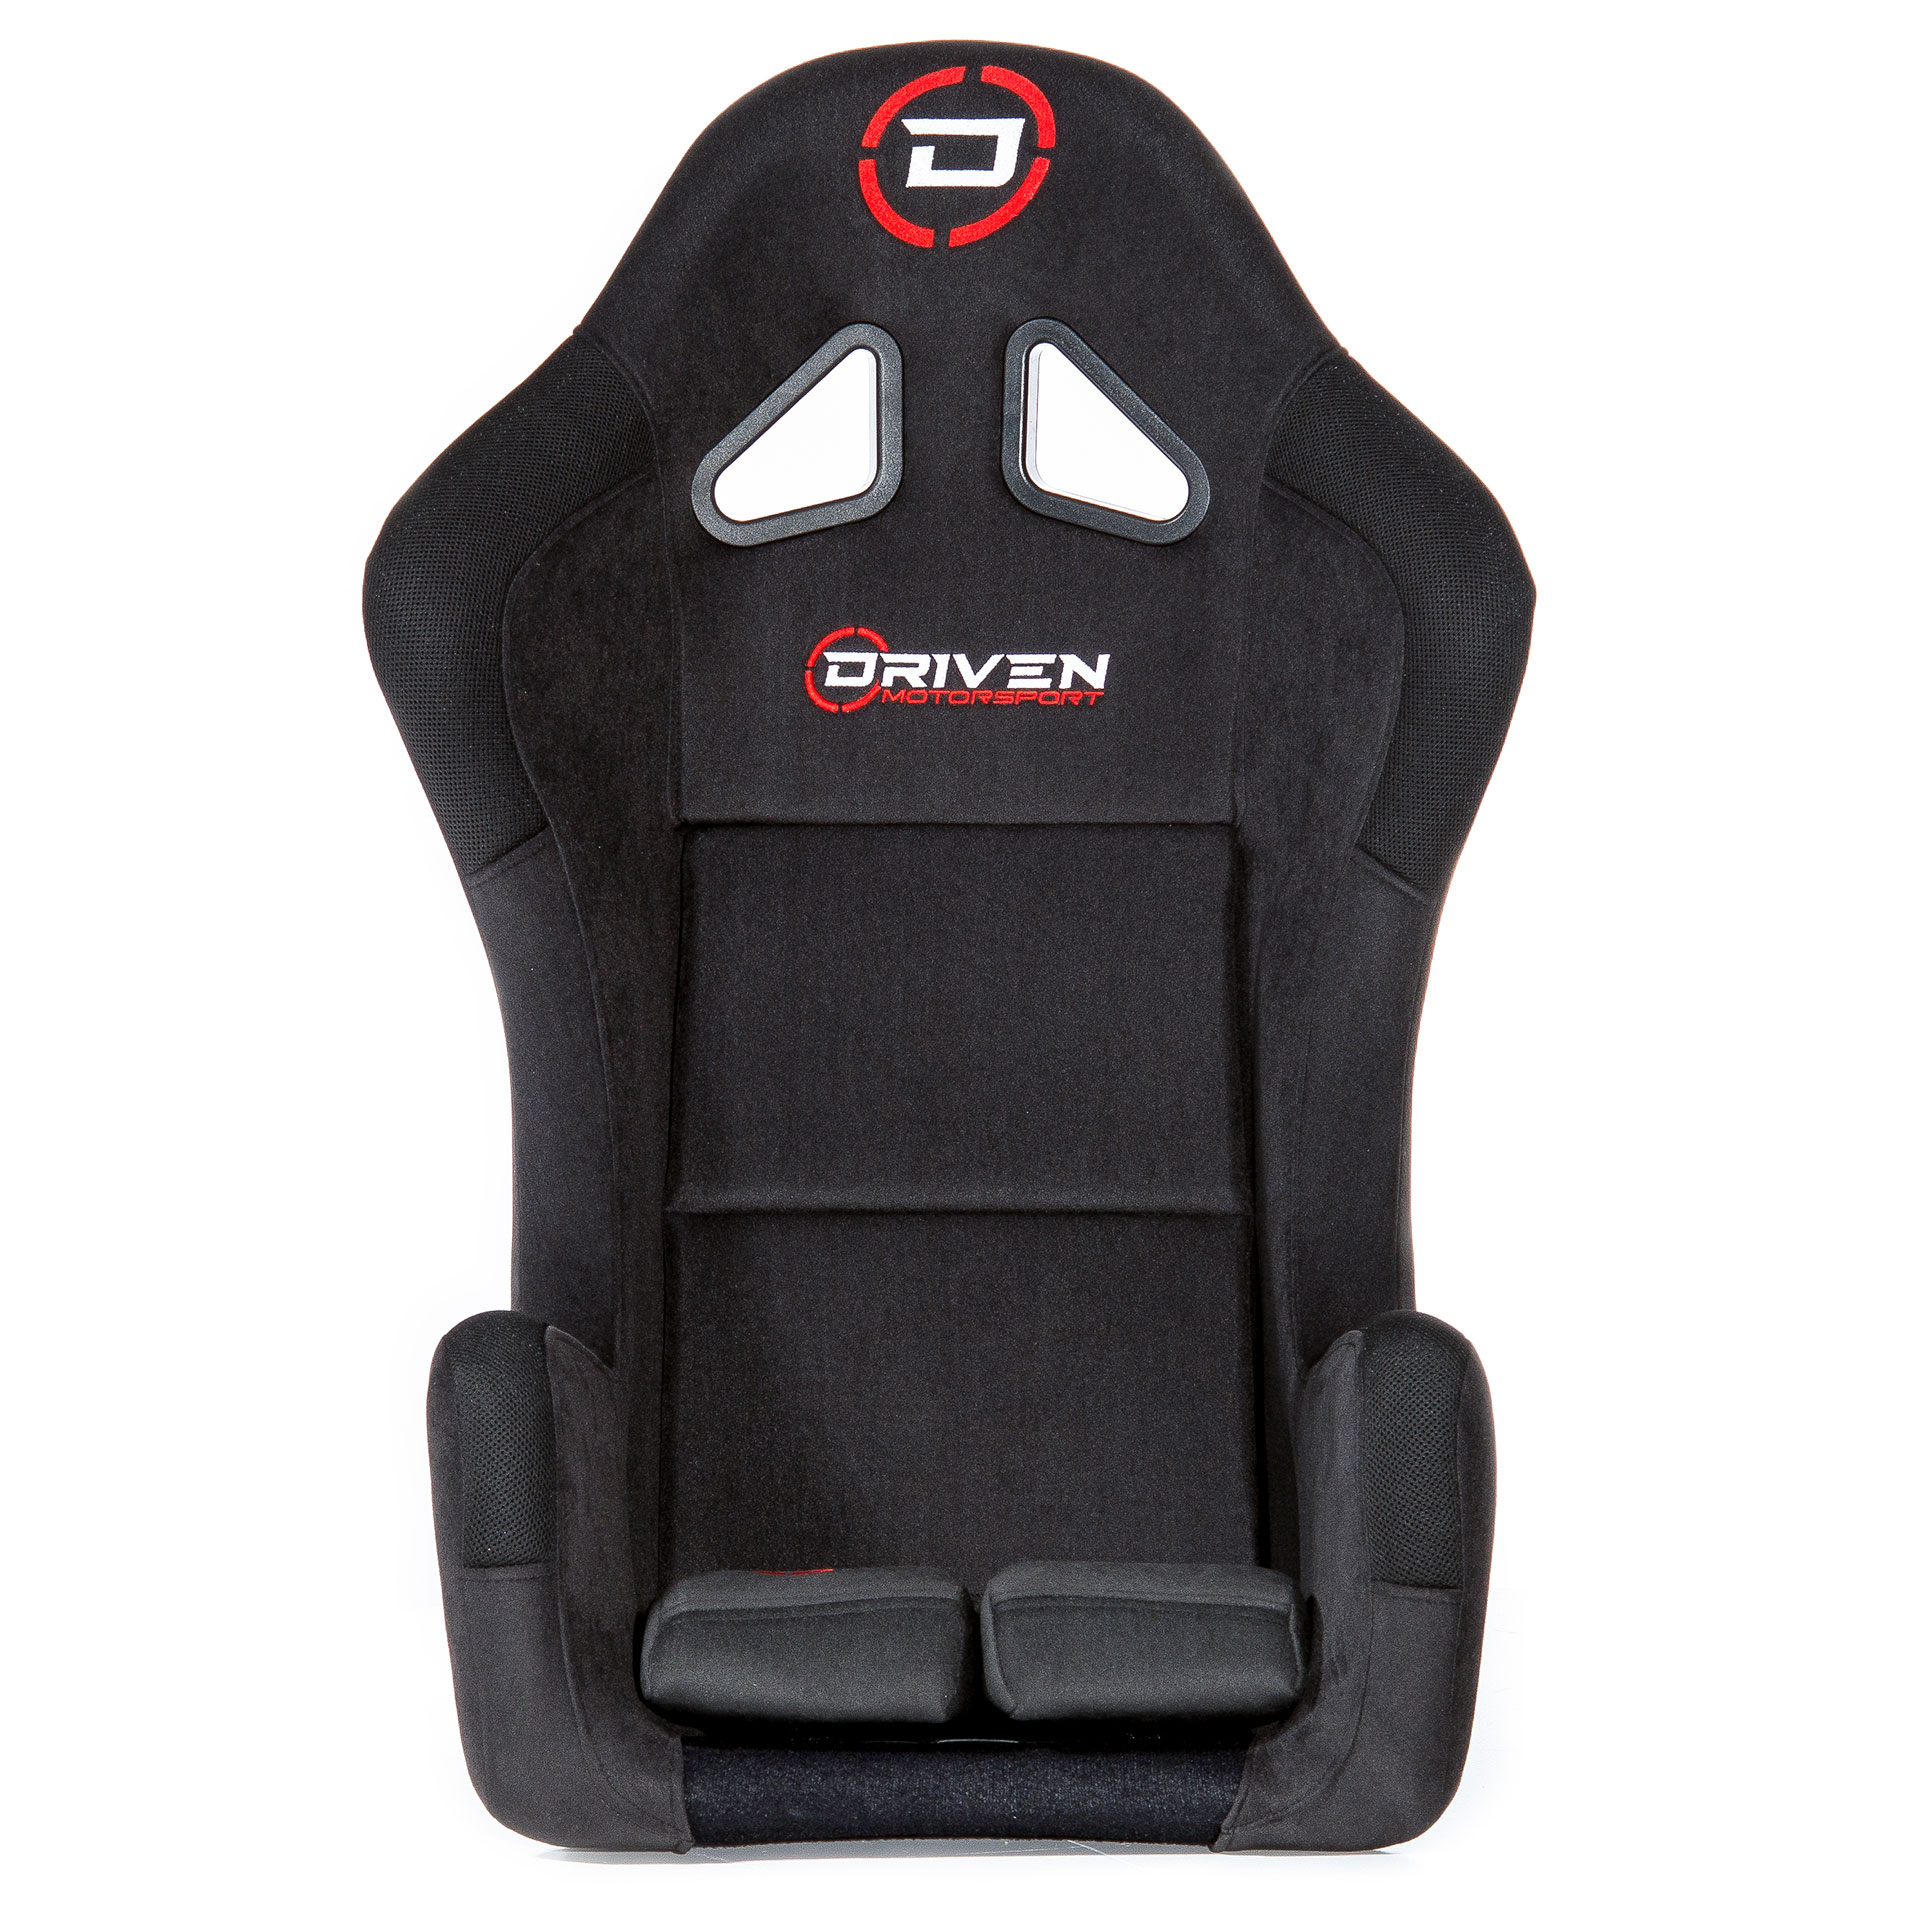 FIA Approved Racing Seat - Driven Steering